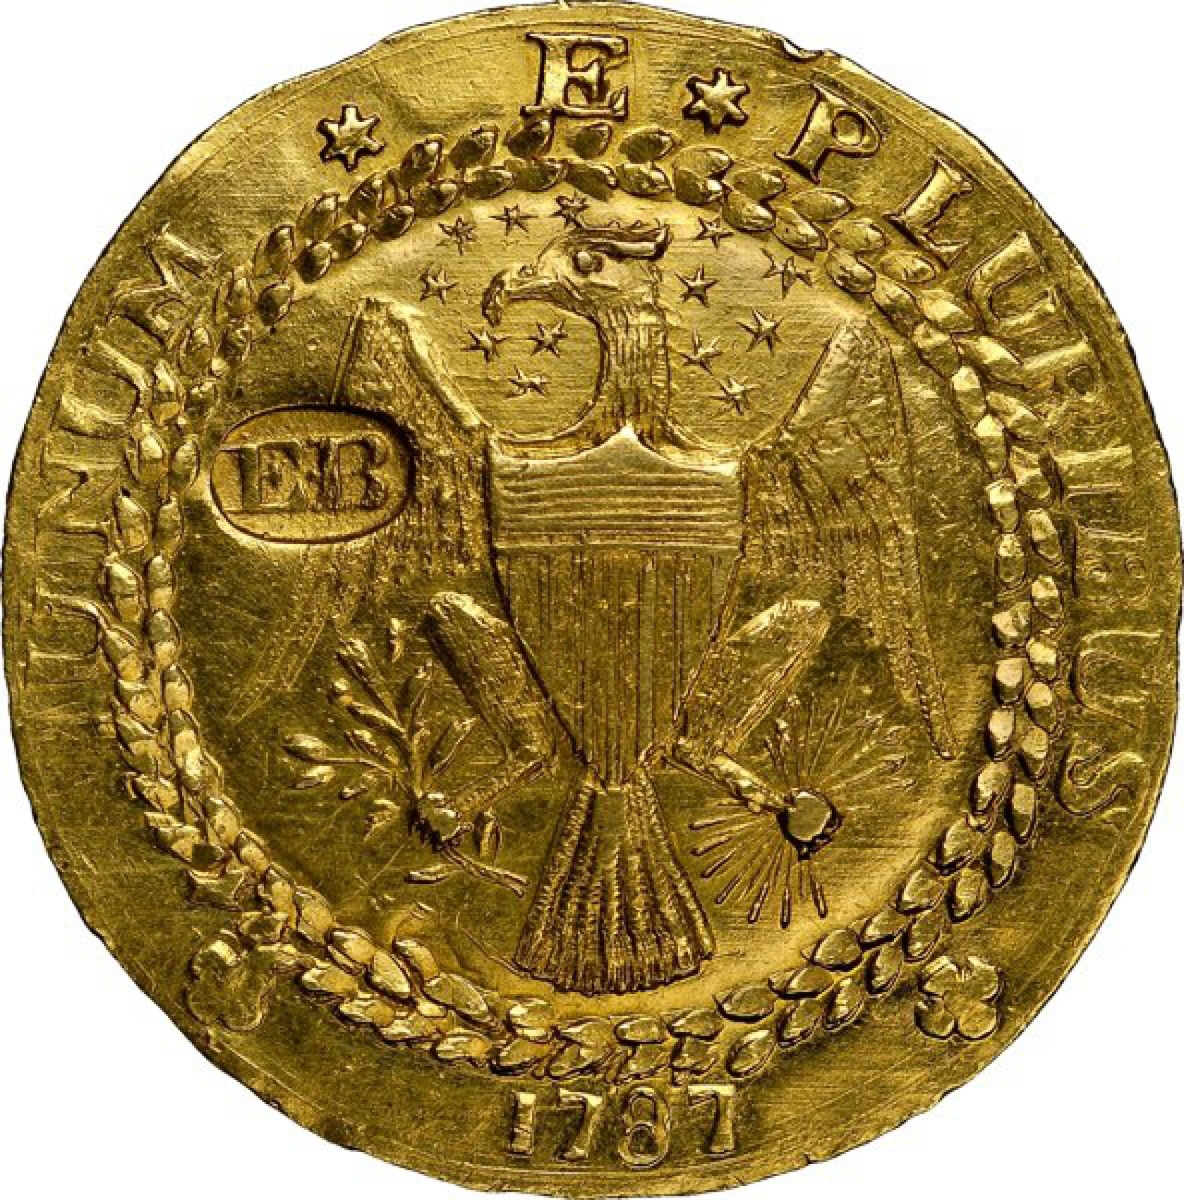 The most valuable coin Heritage Auctions has sold publicly is the 1787 DBLN Brasher Doubloon, which brought $4.5 million in January 2014. Heritage now surpasses $344 million in online auction sales a year.